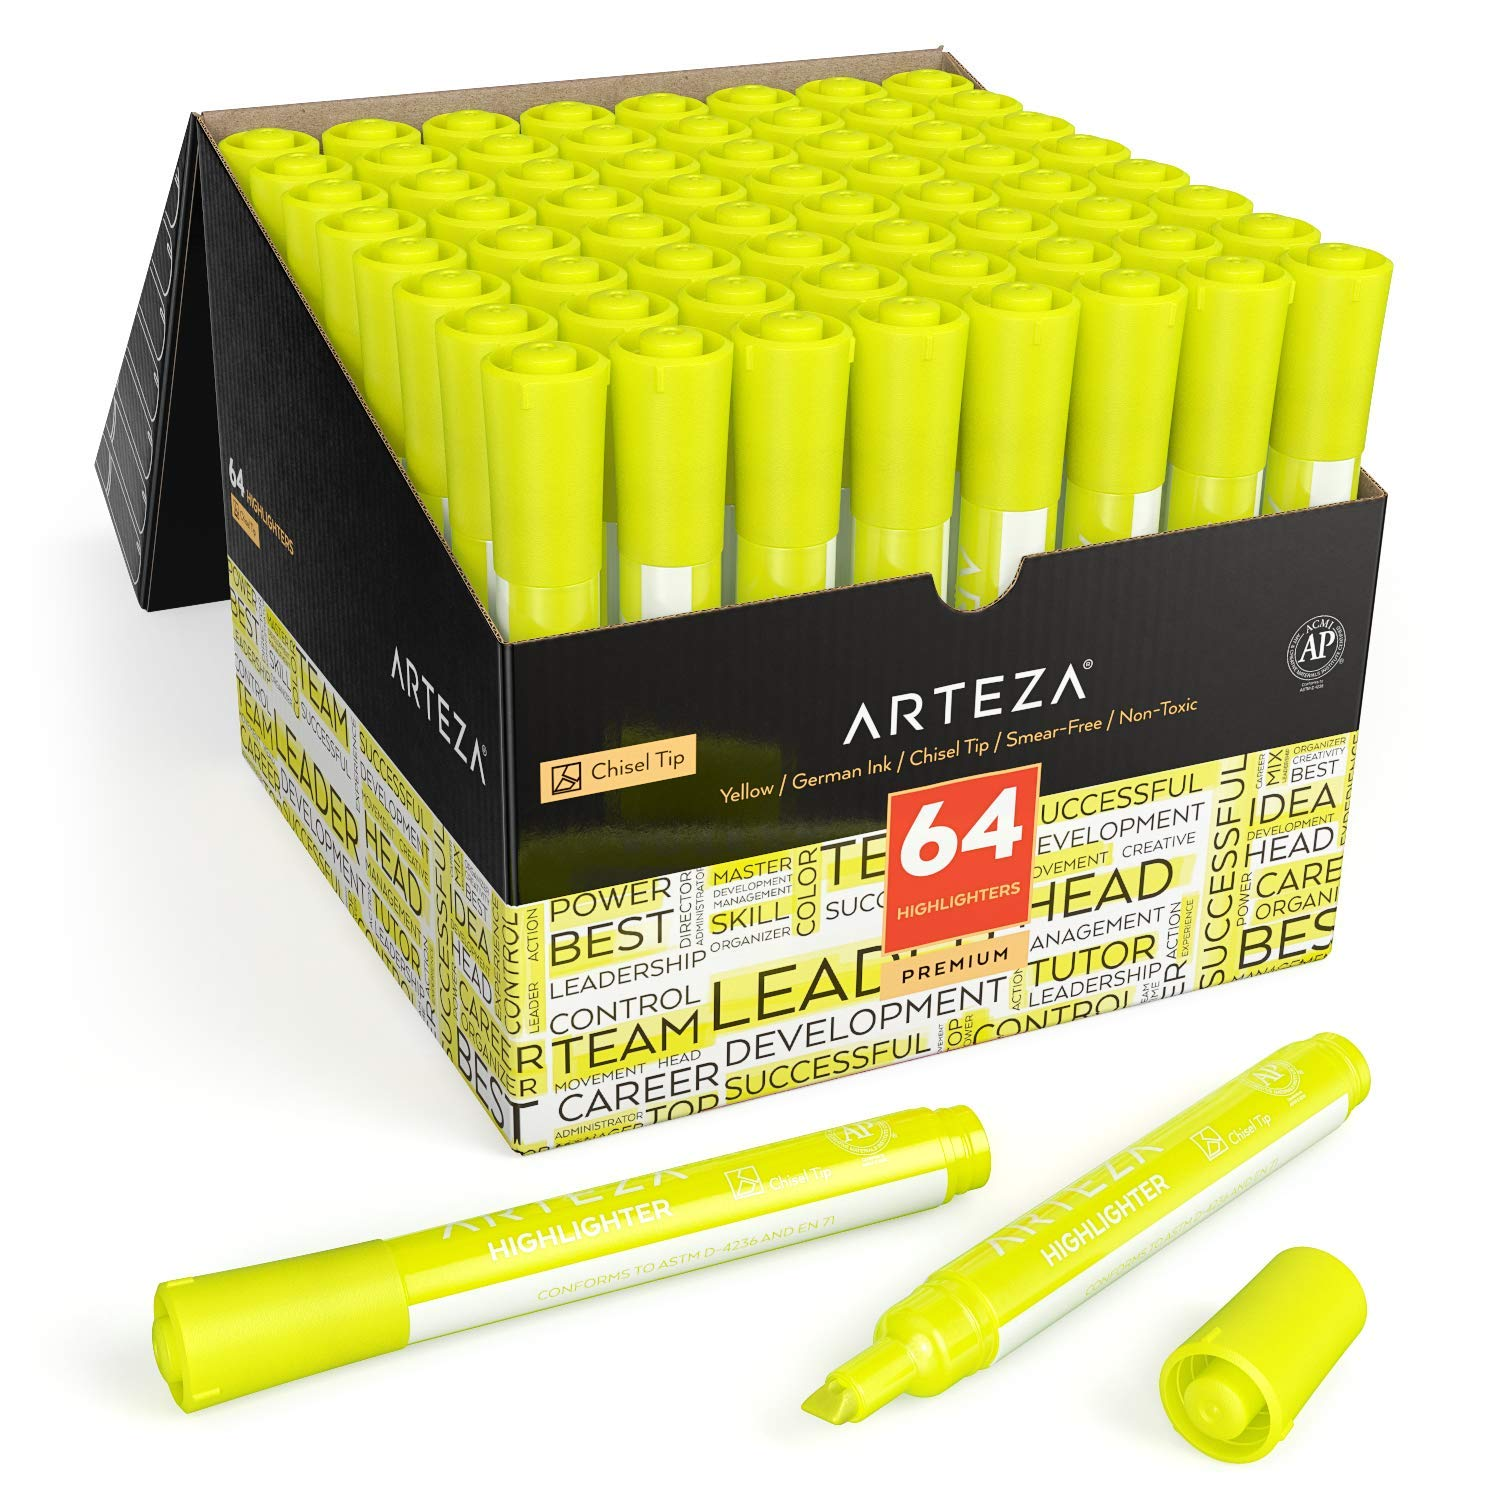 Arteza Highlighters Set of 64, Yellow Color, Wide Chisel Tips, Bulk Pack of Markers, for Office, School, Kids & Adults by ARTEZA (Image #1)